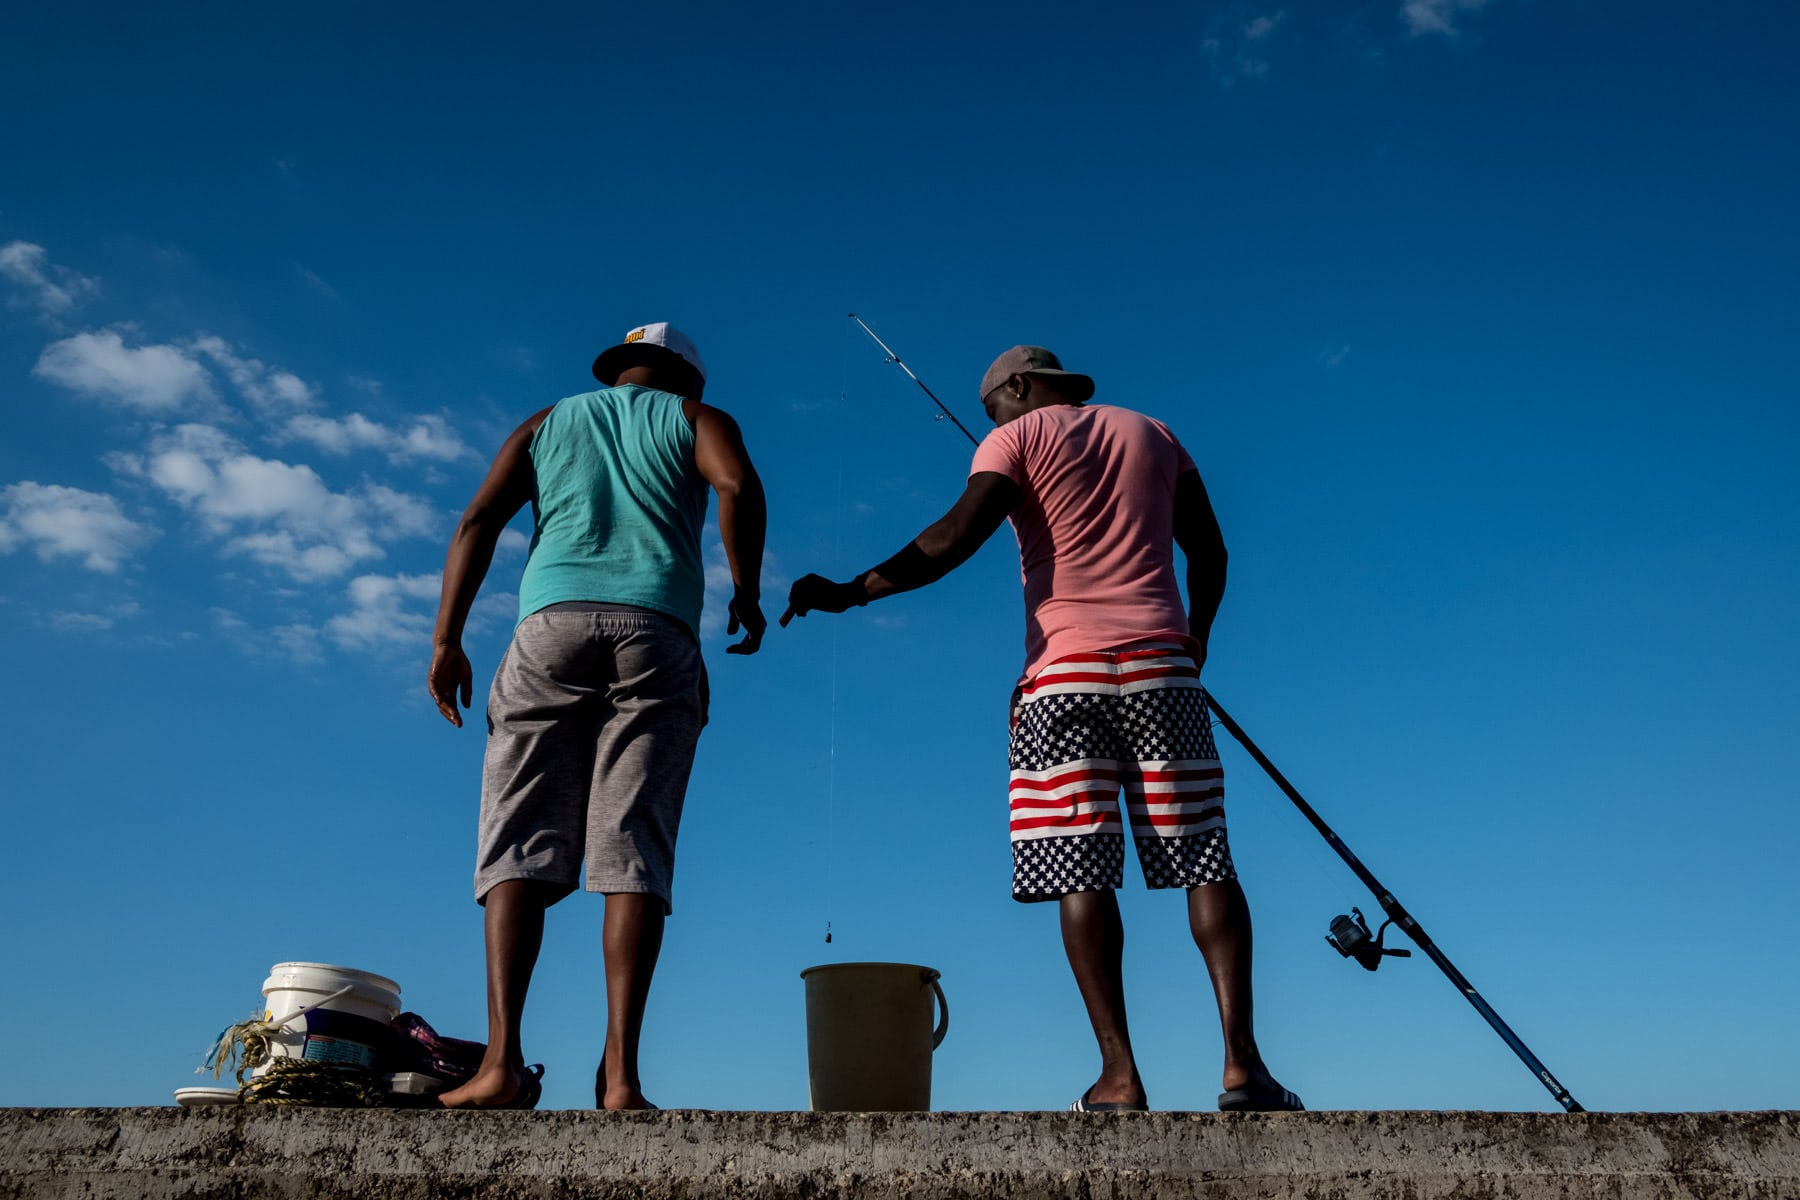 2 cuban fishermen standing on the Malecon in Havana with USA flag shorts